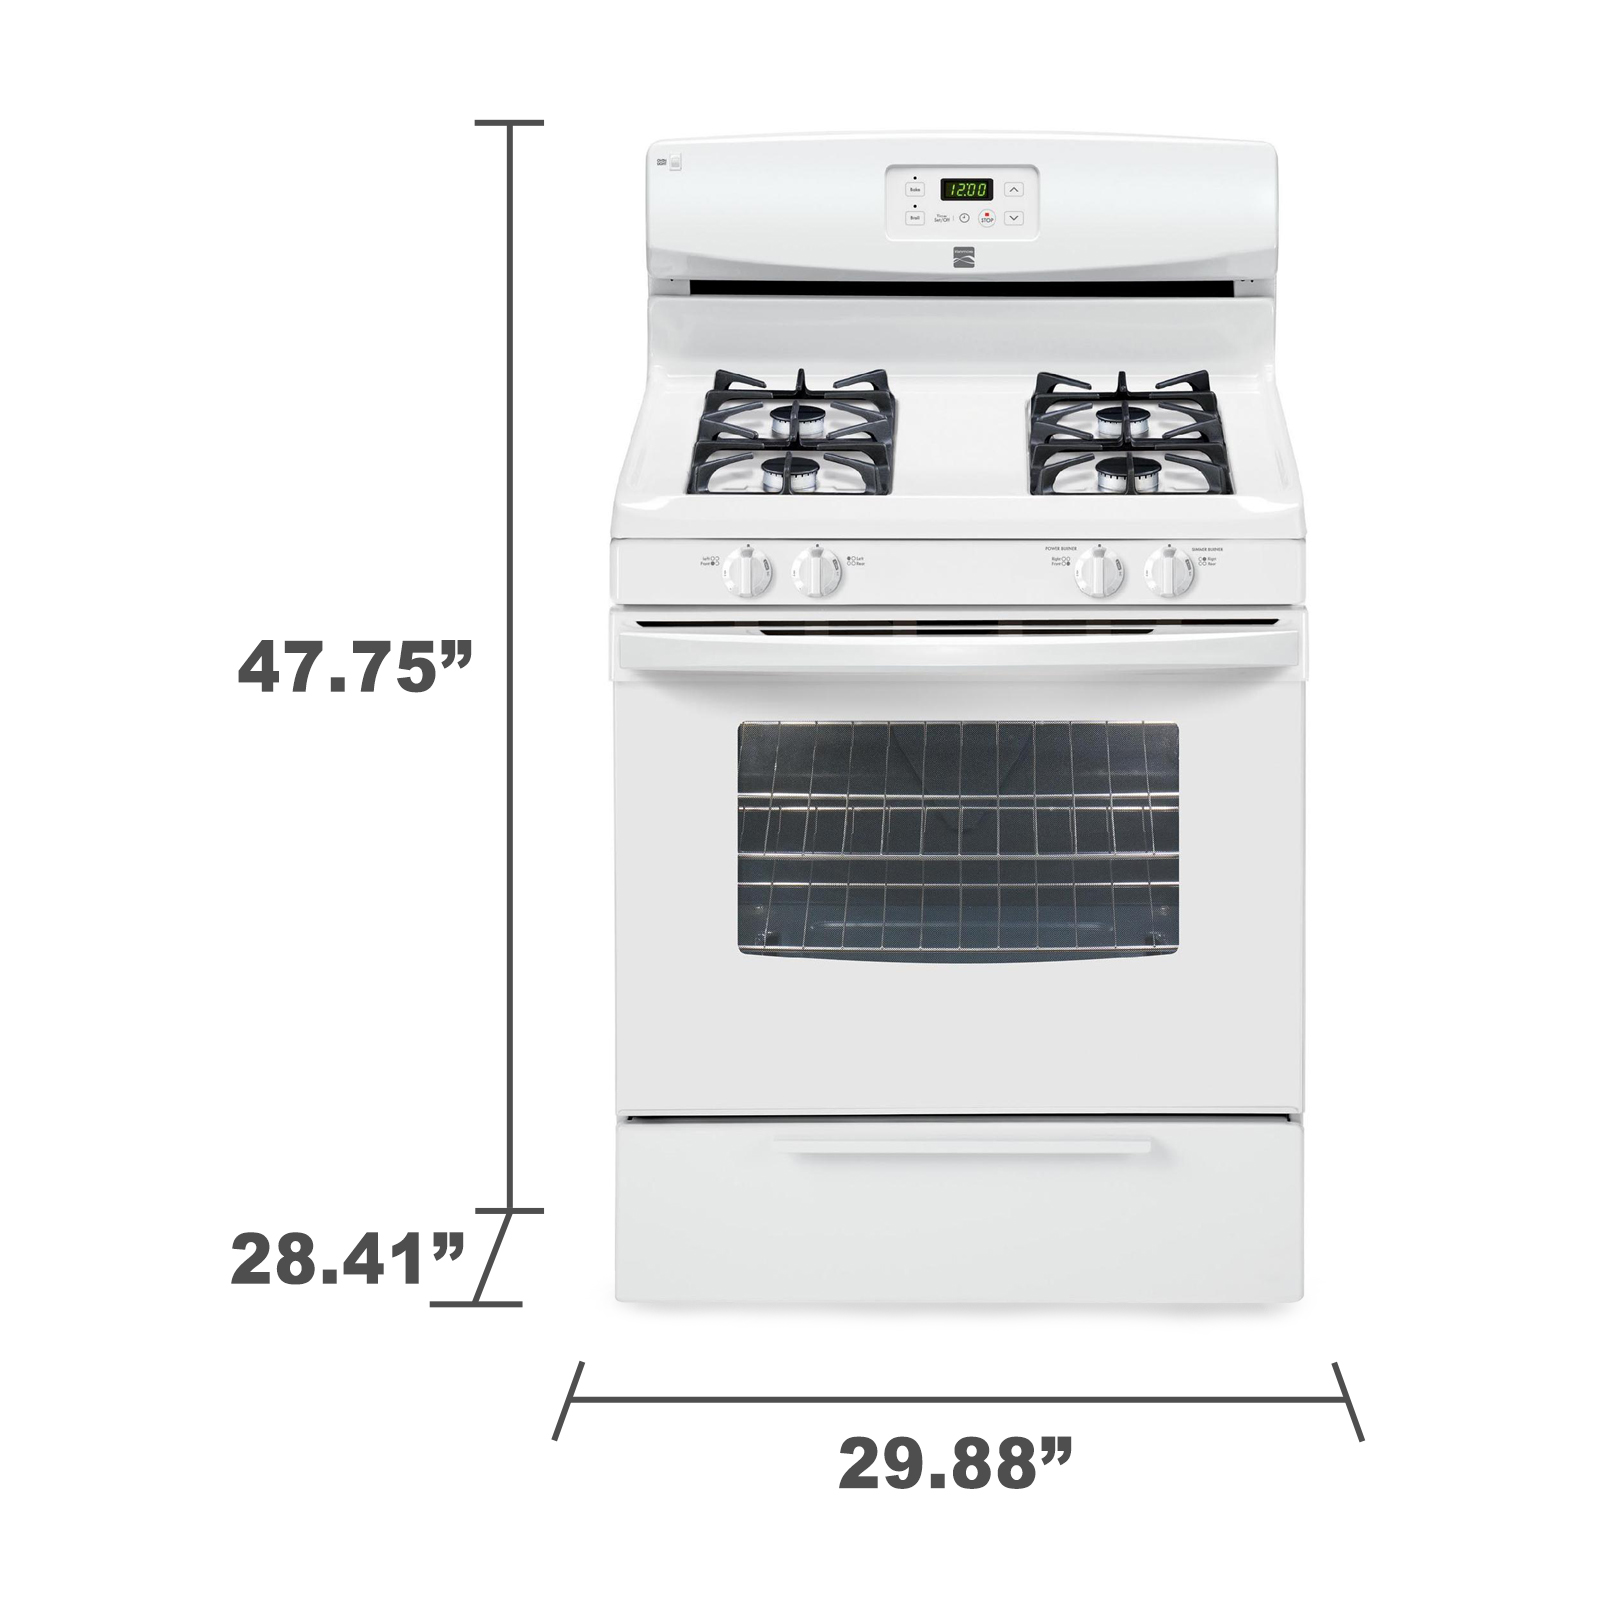 Kenmore 73232 4.2 cu. ft. Gas Range w/ Broil & Serve Drawer - White